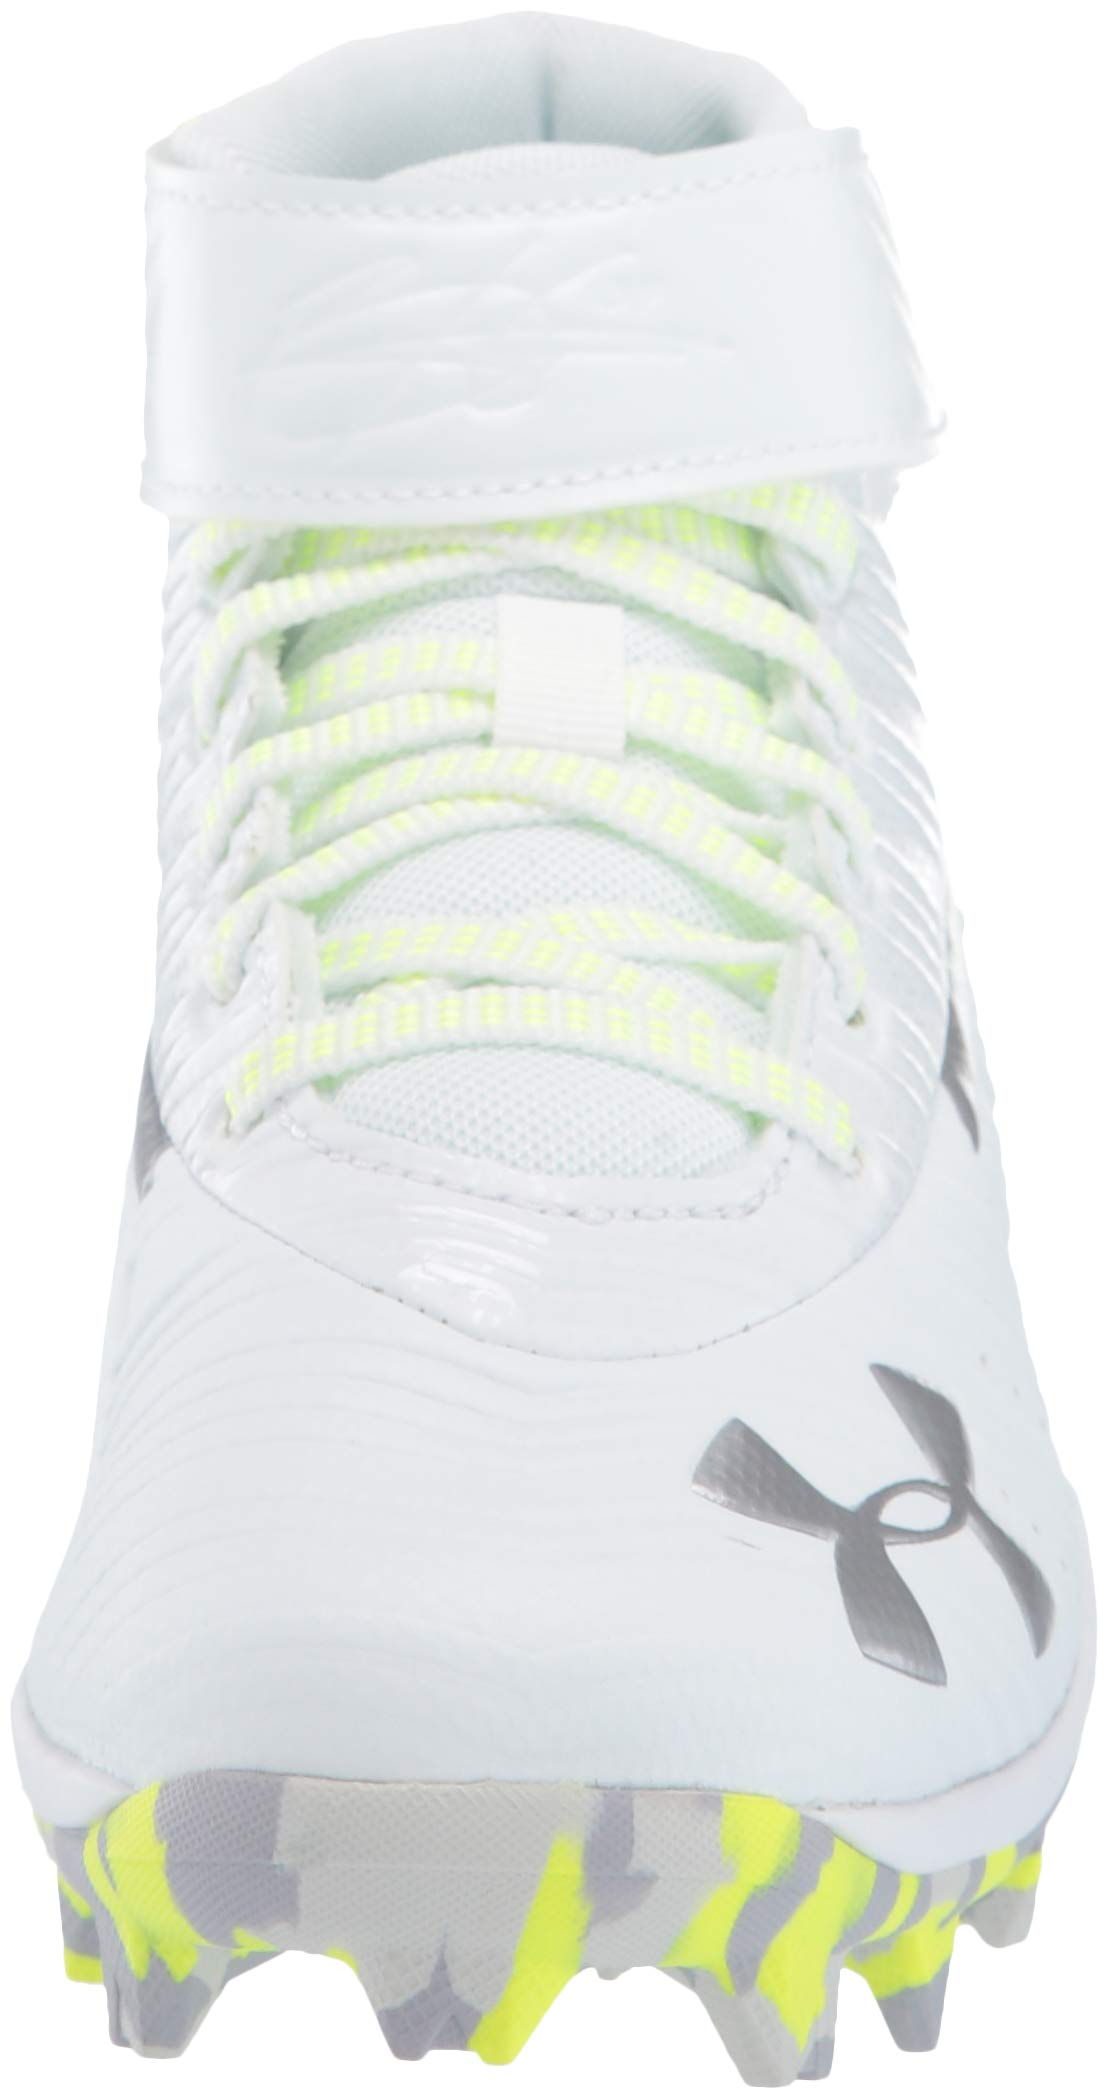 Under Armour Boys' Harper 3 Mid Jr. RM Baseball Shoe 100/White, 1 by Under Armour (Image #4)